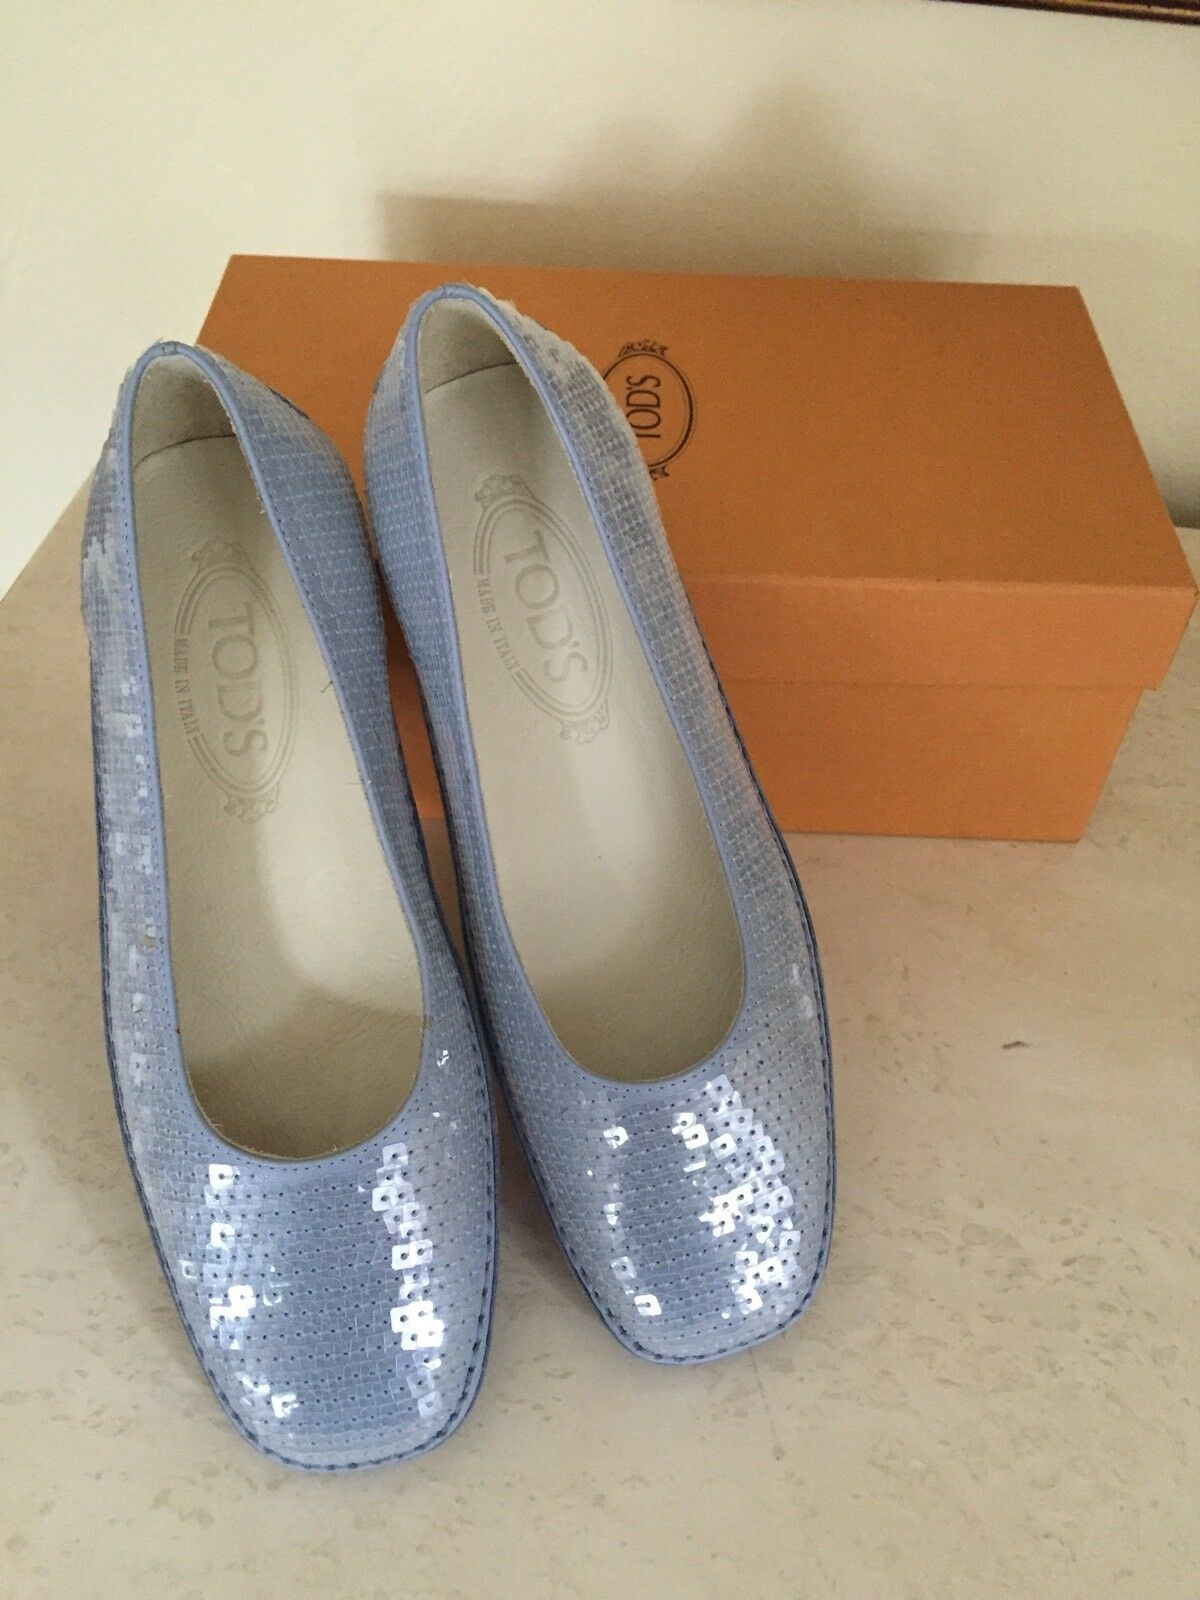 TOD'S Women's bluee Sequin and Leather shoes Ballerina Flat Size 7.5 with box EUC